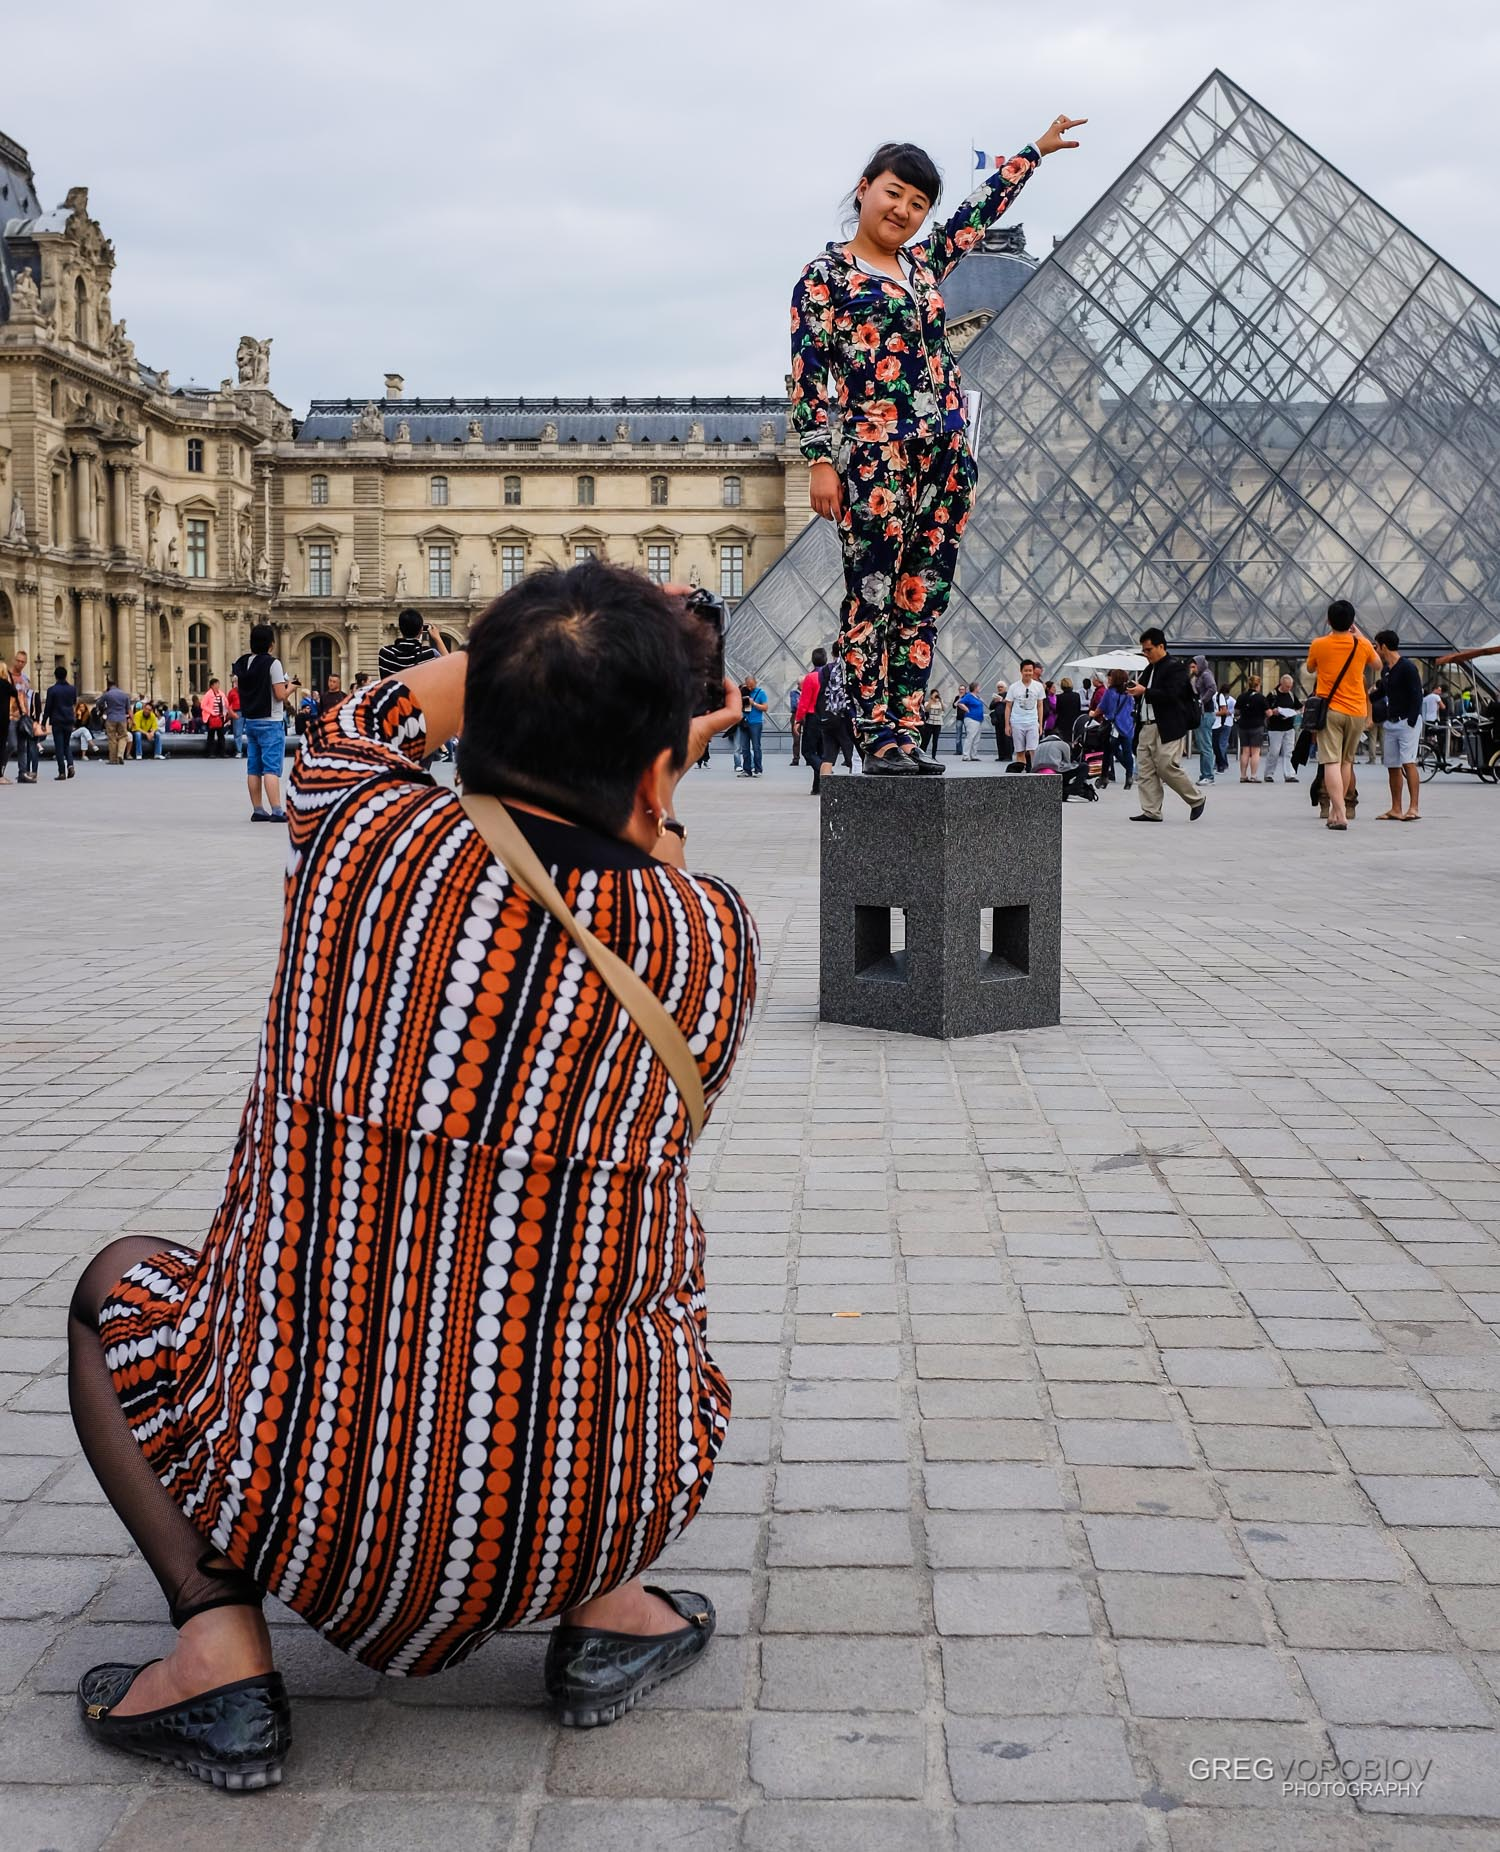 street_fashion_louvre_paris_by_greg_vorobiov-1.jpg